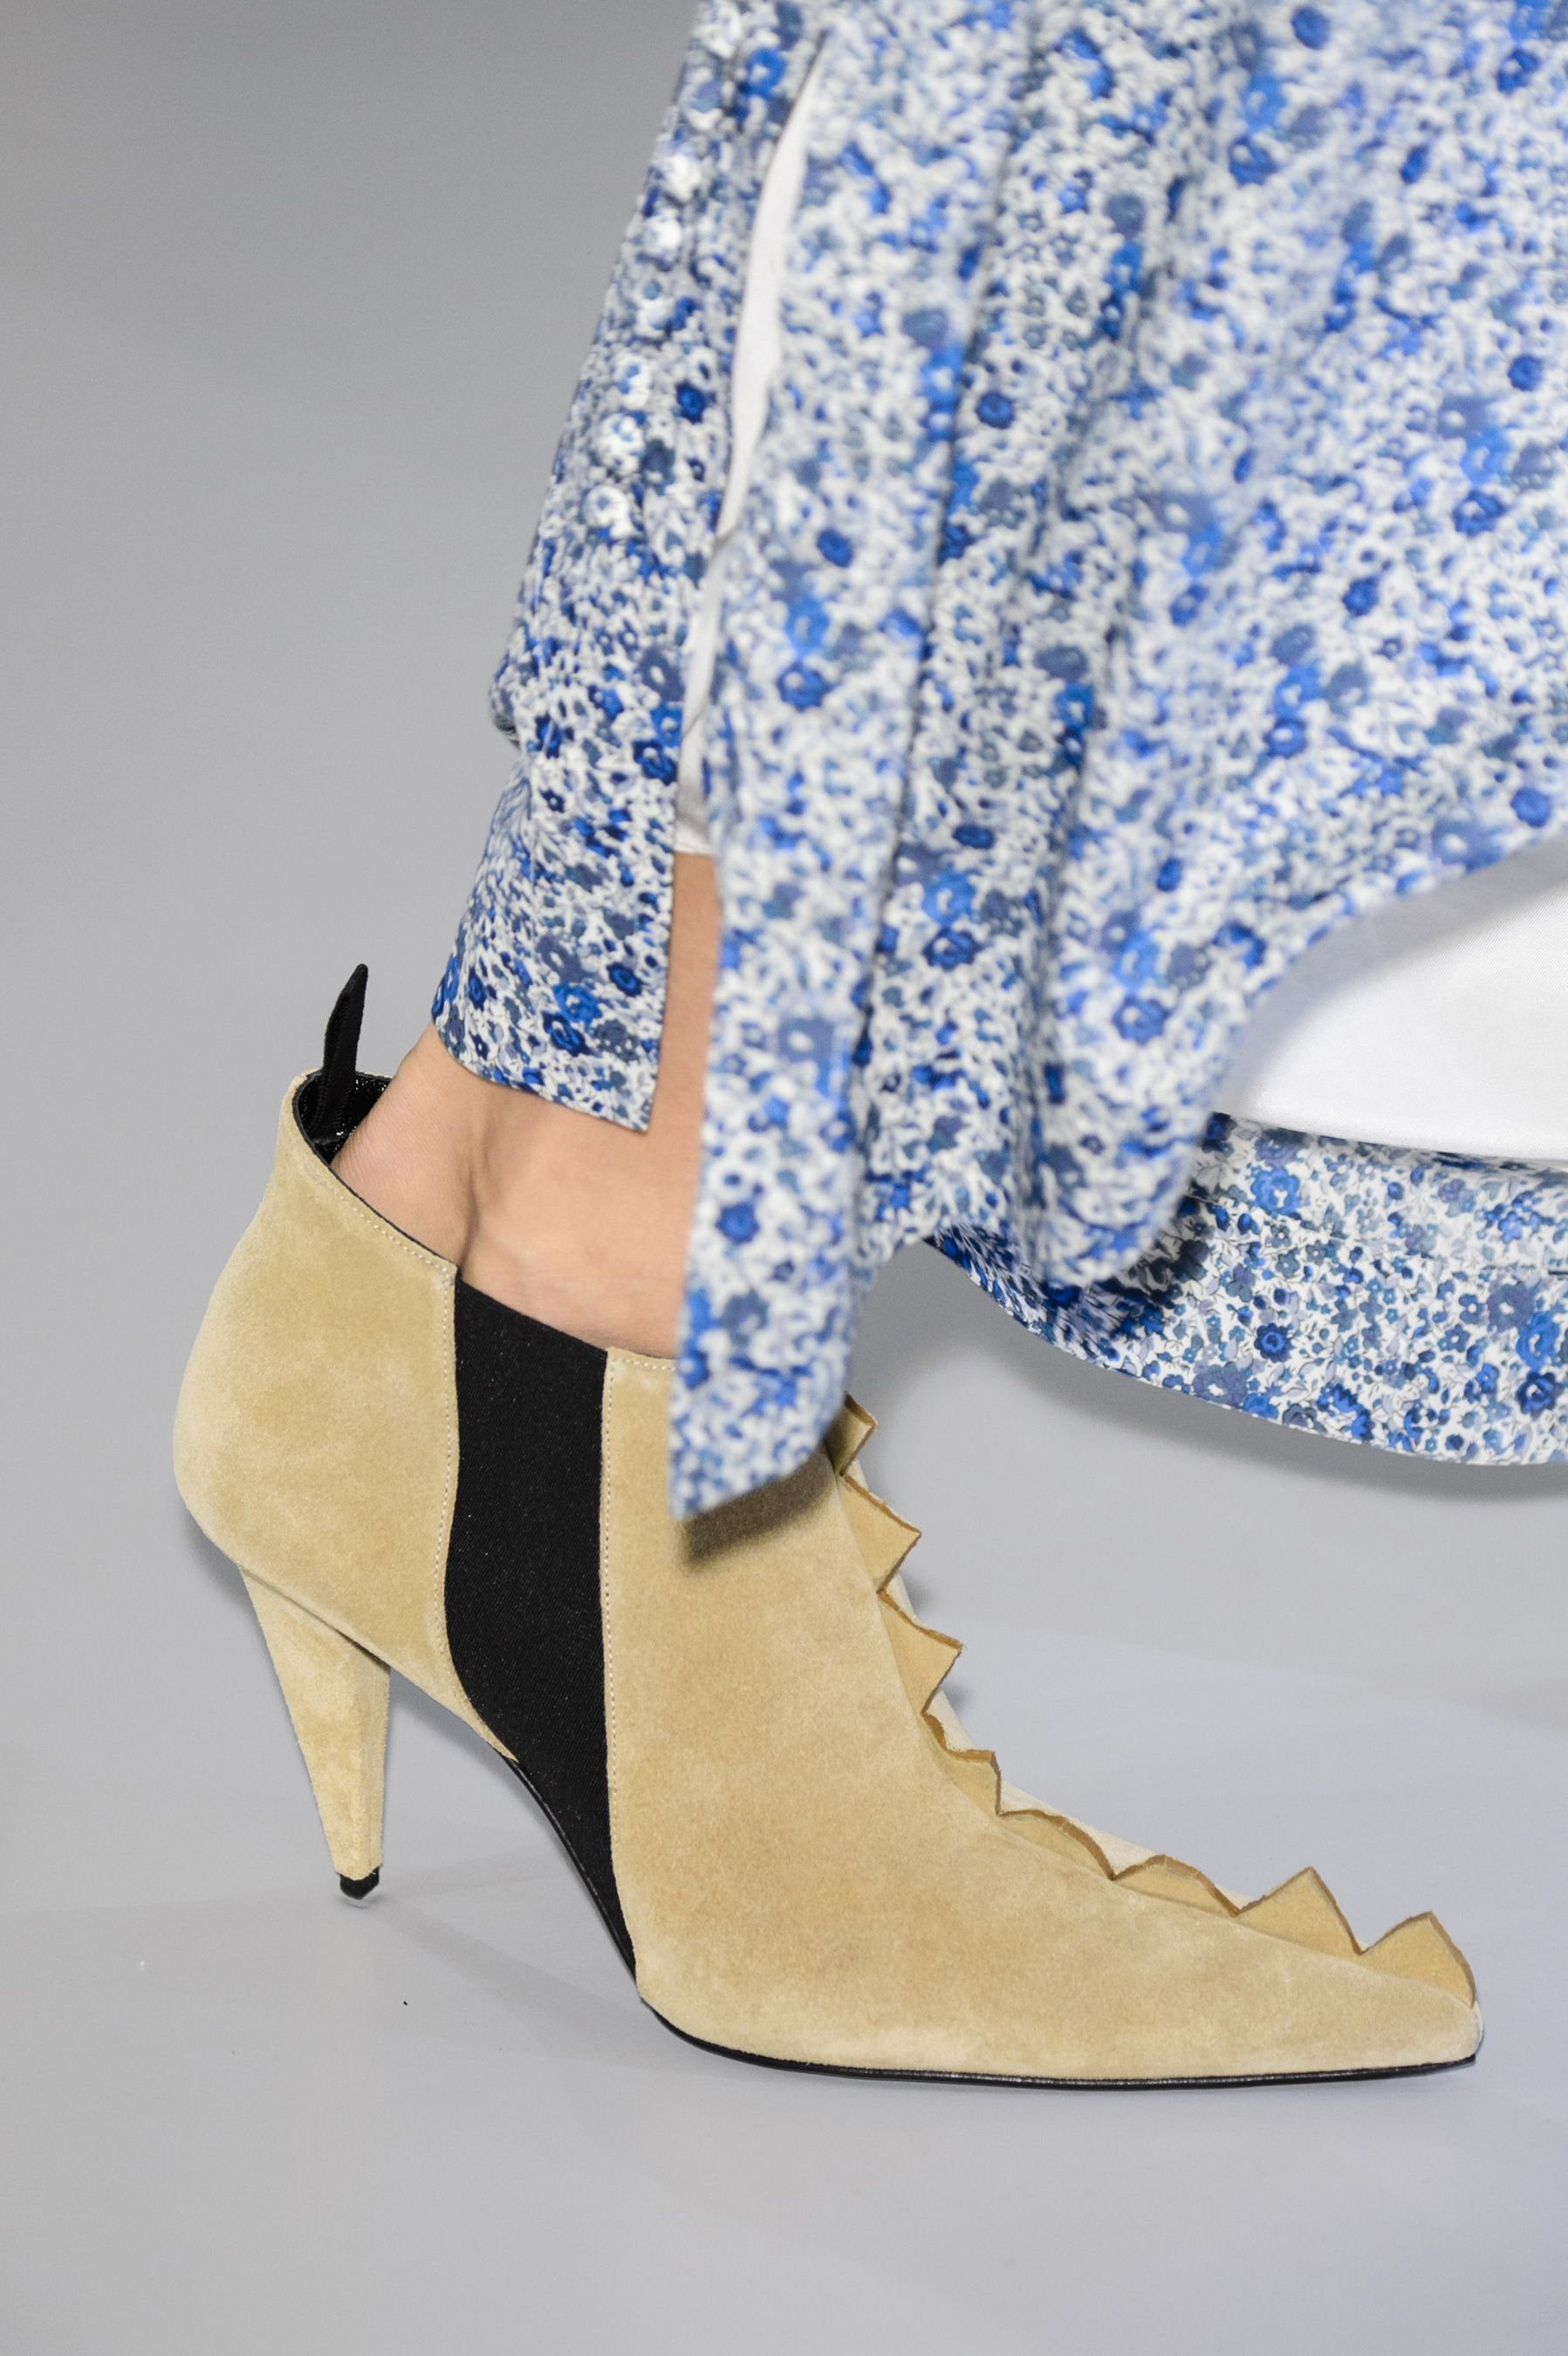 Loewe Spring 2018 Fashion Show Details, Runway, Womenswear Collections at TheImpression.com - Fashion news, street style, models